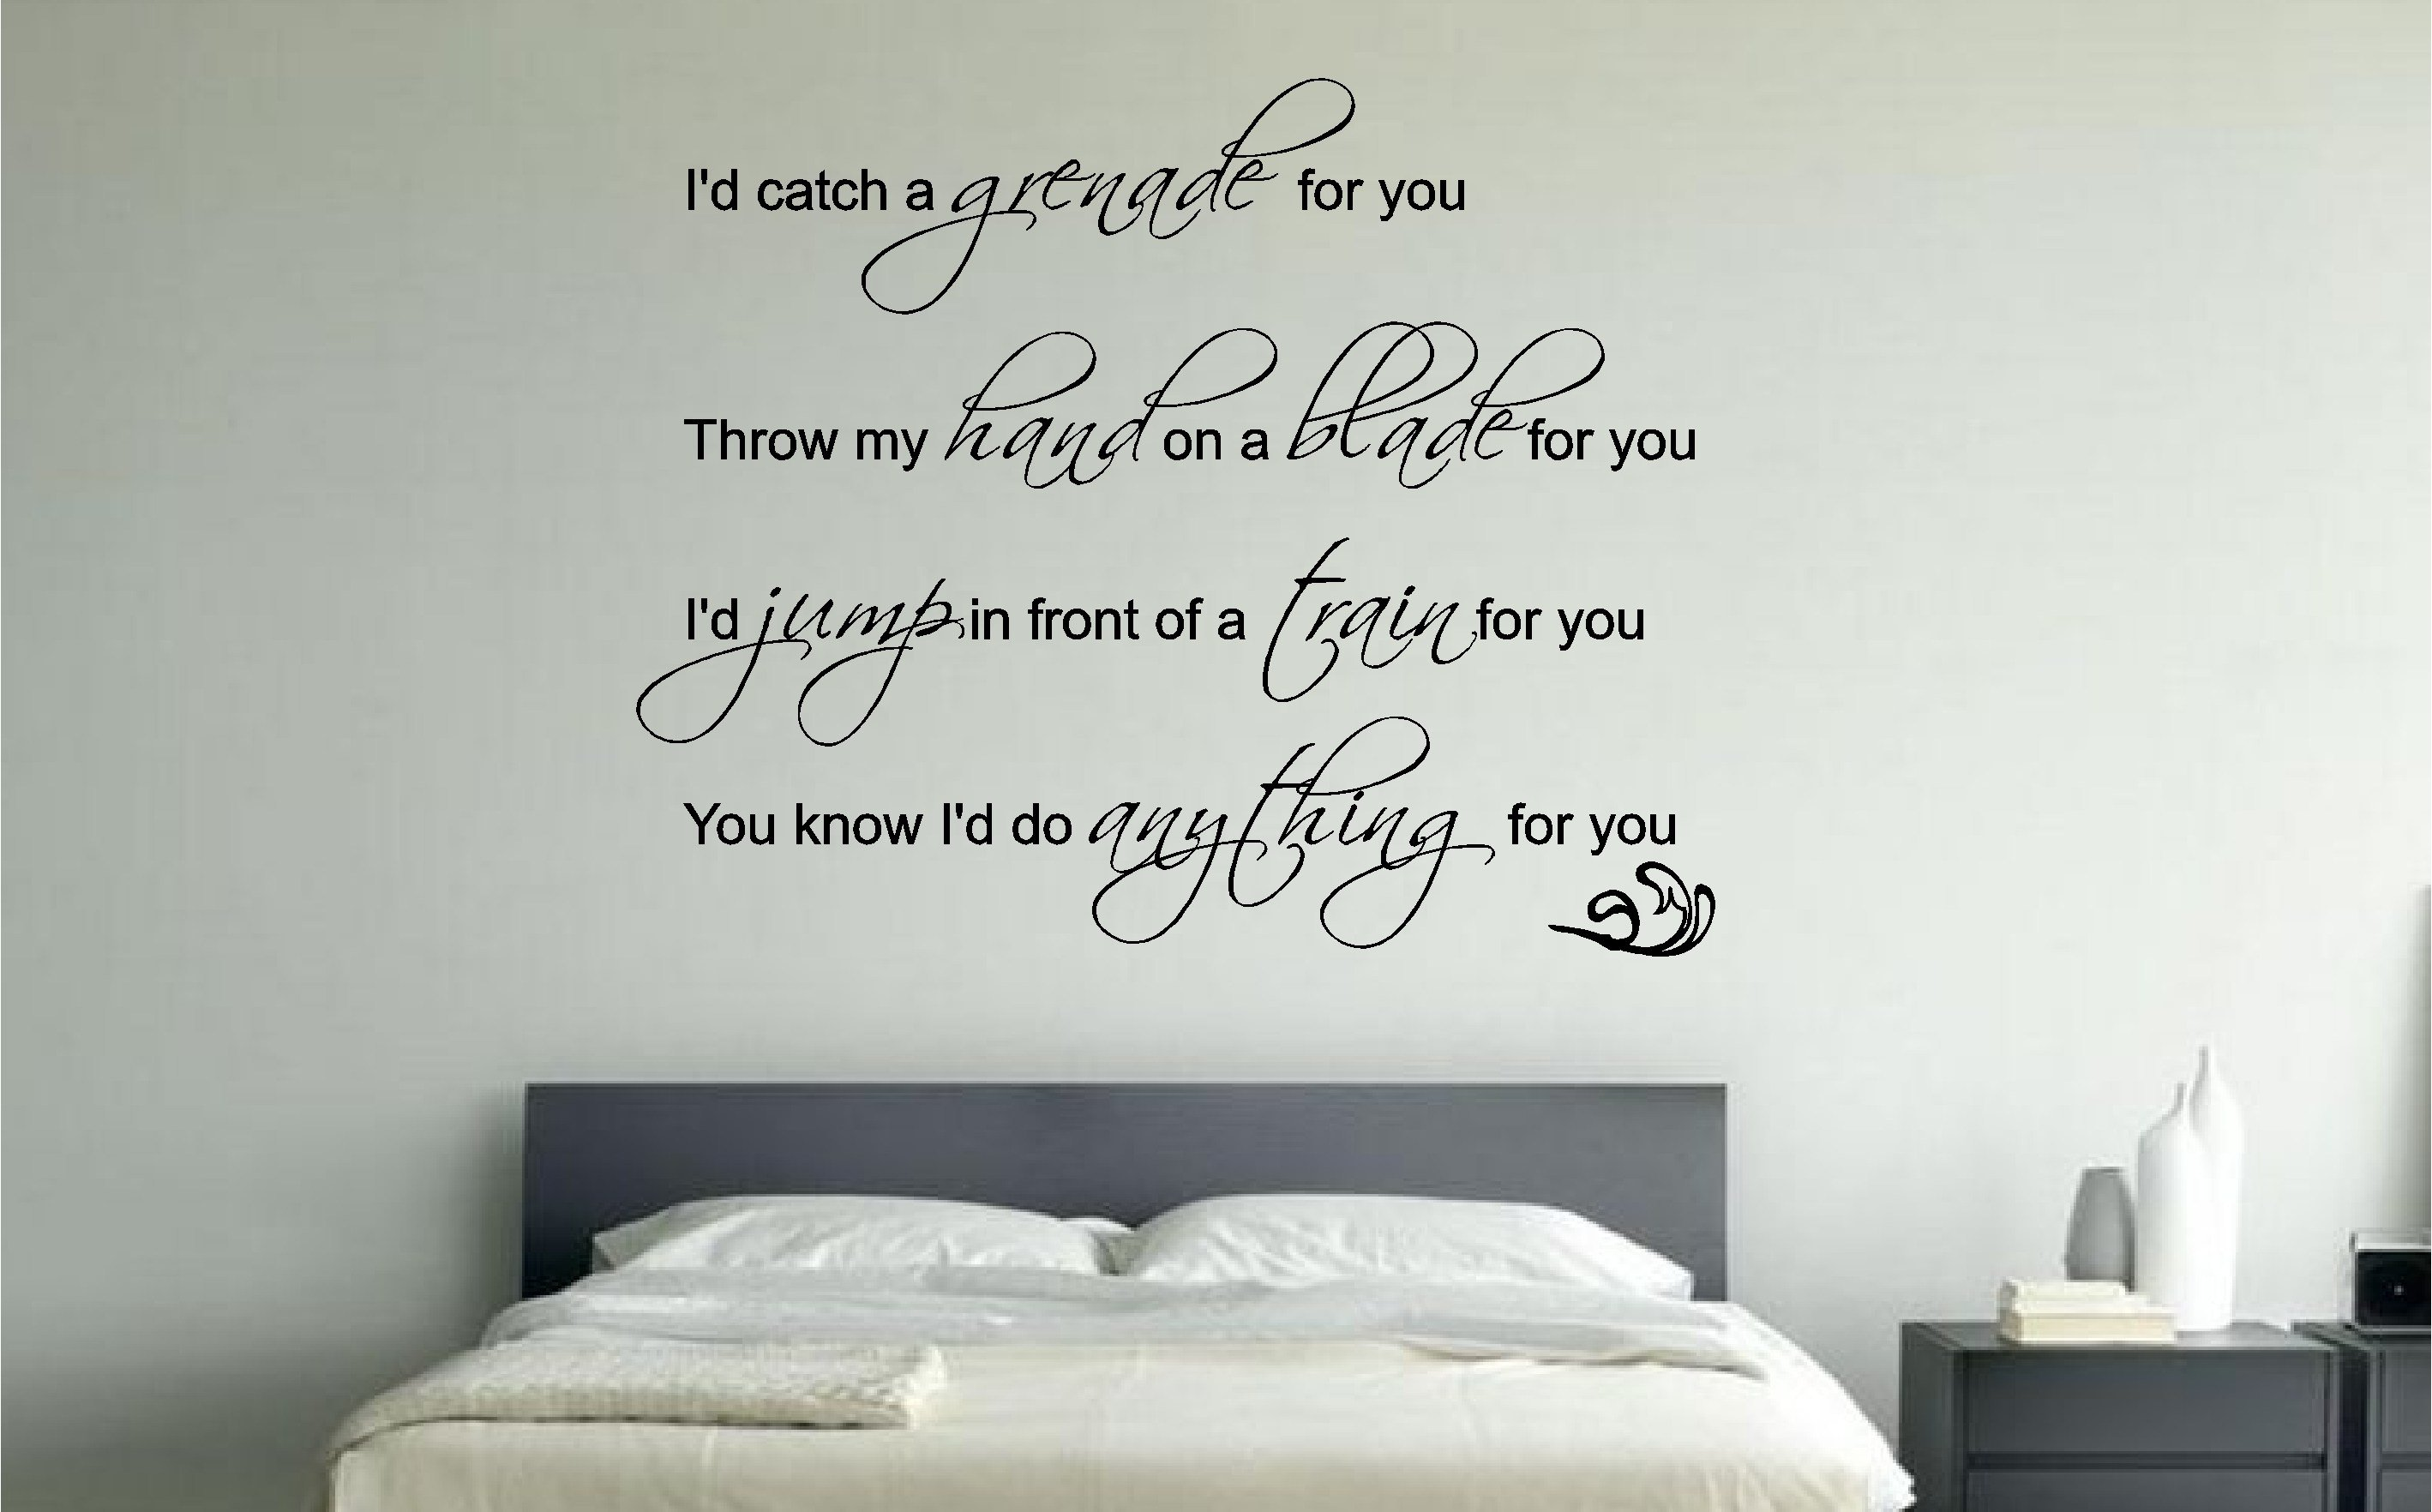 Best Bruno Mars Grenade Lyrics Music Wall Art Sticker Decal With Pictures